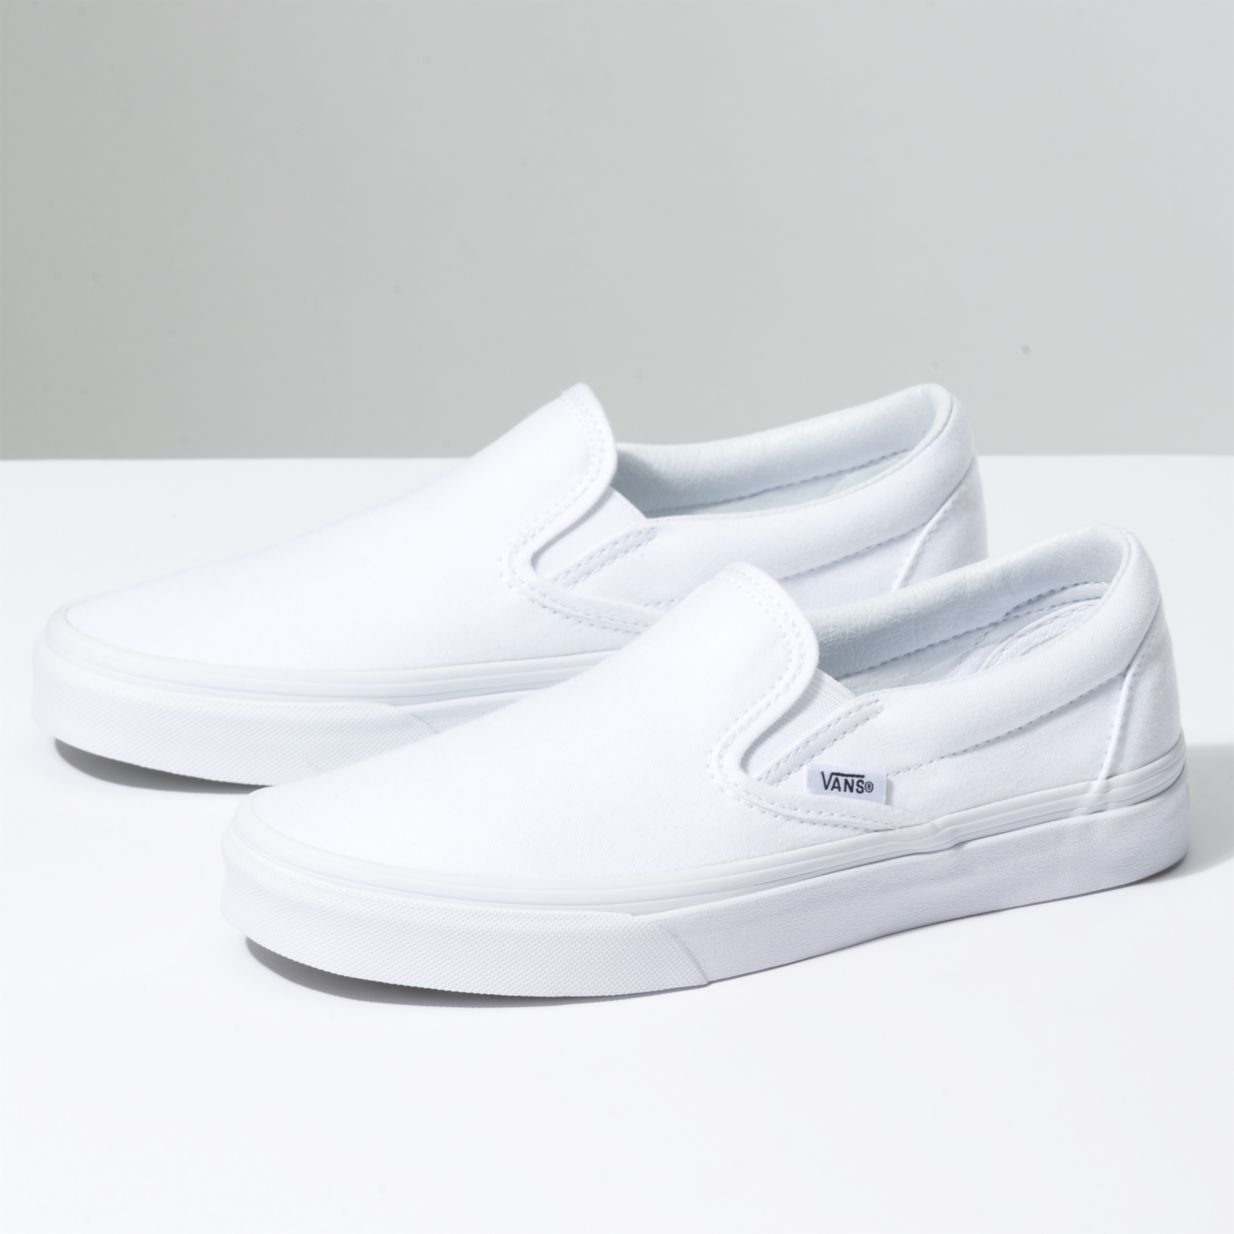 New Men & Women Vans New Classic Slip-On True White Era Snea